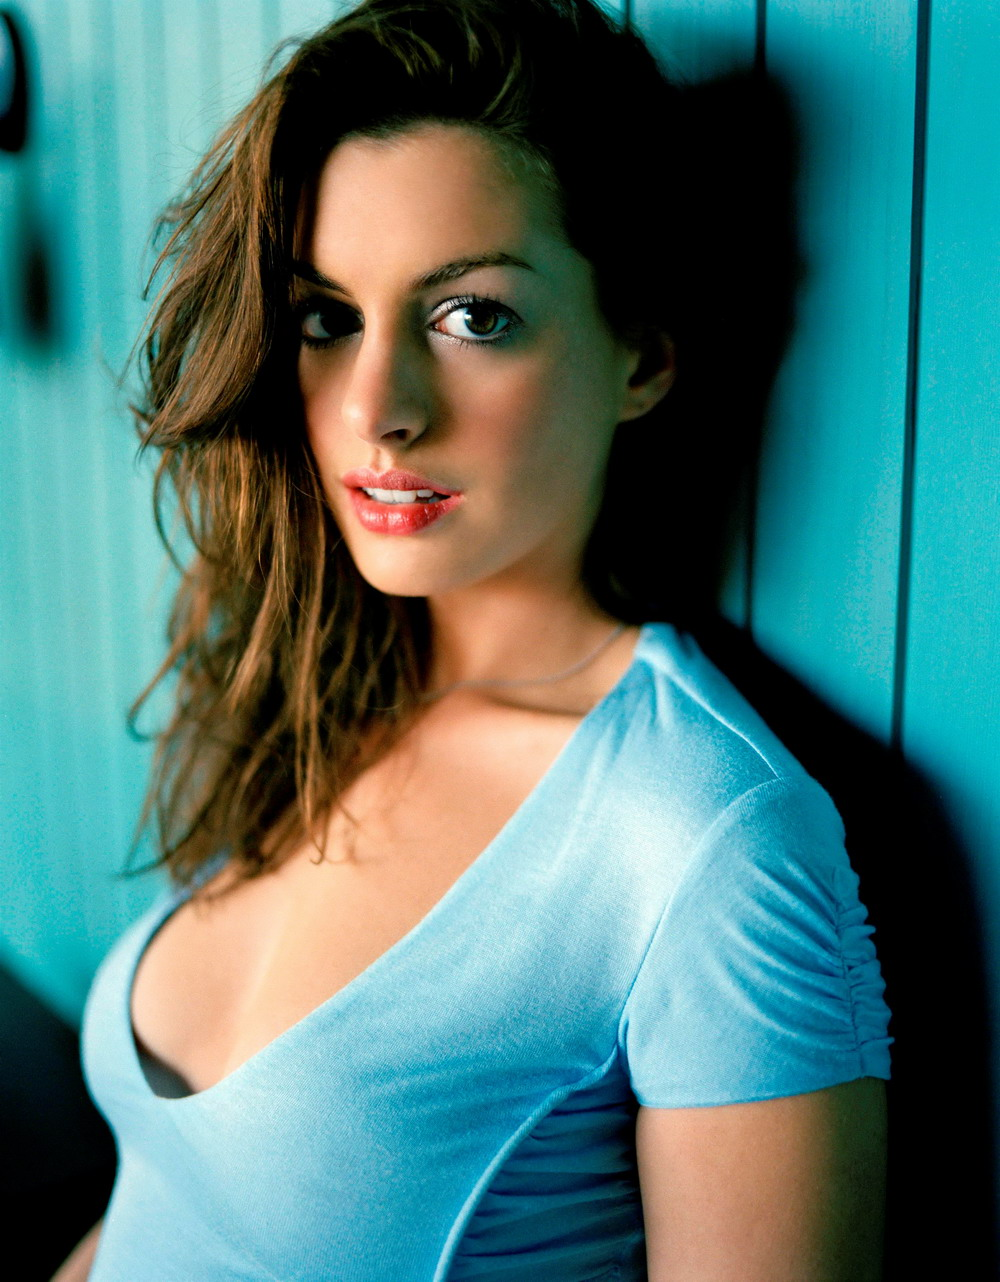 This anne hathaway hot